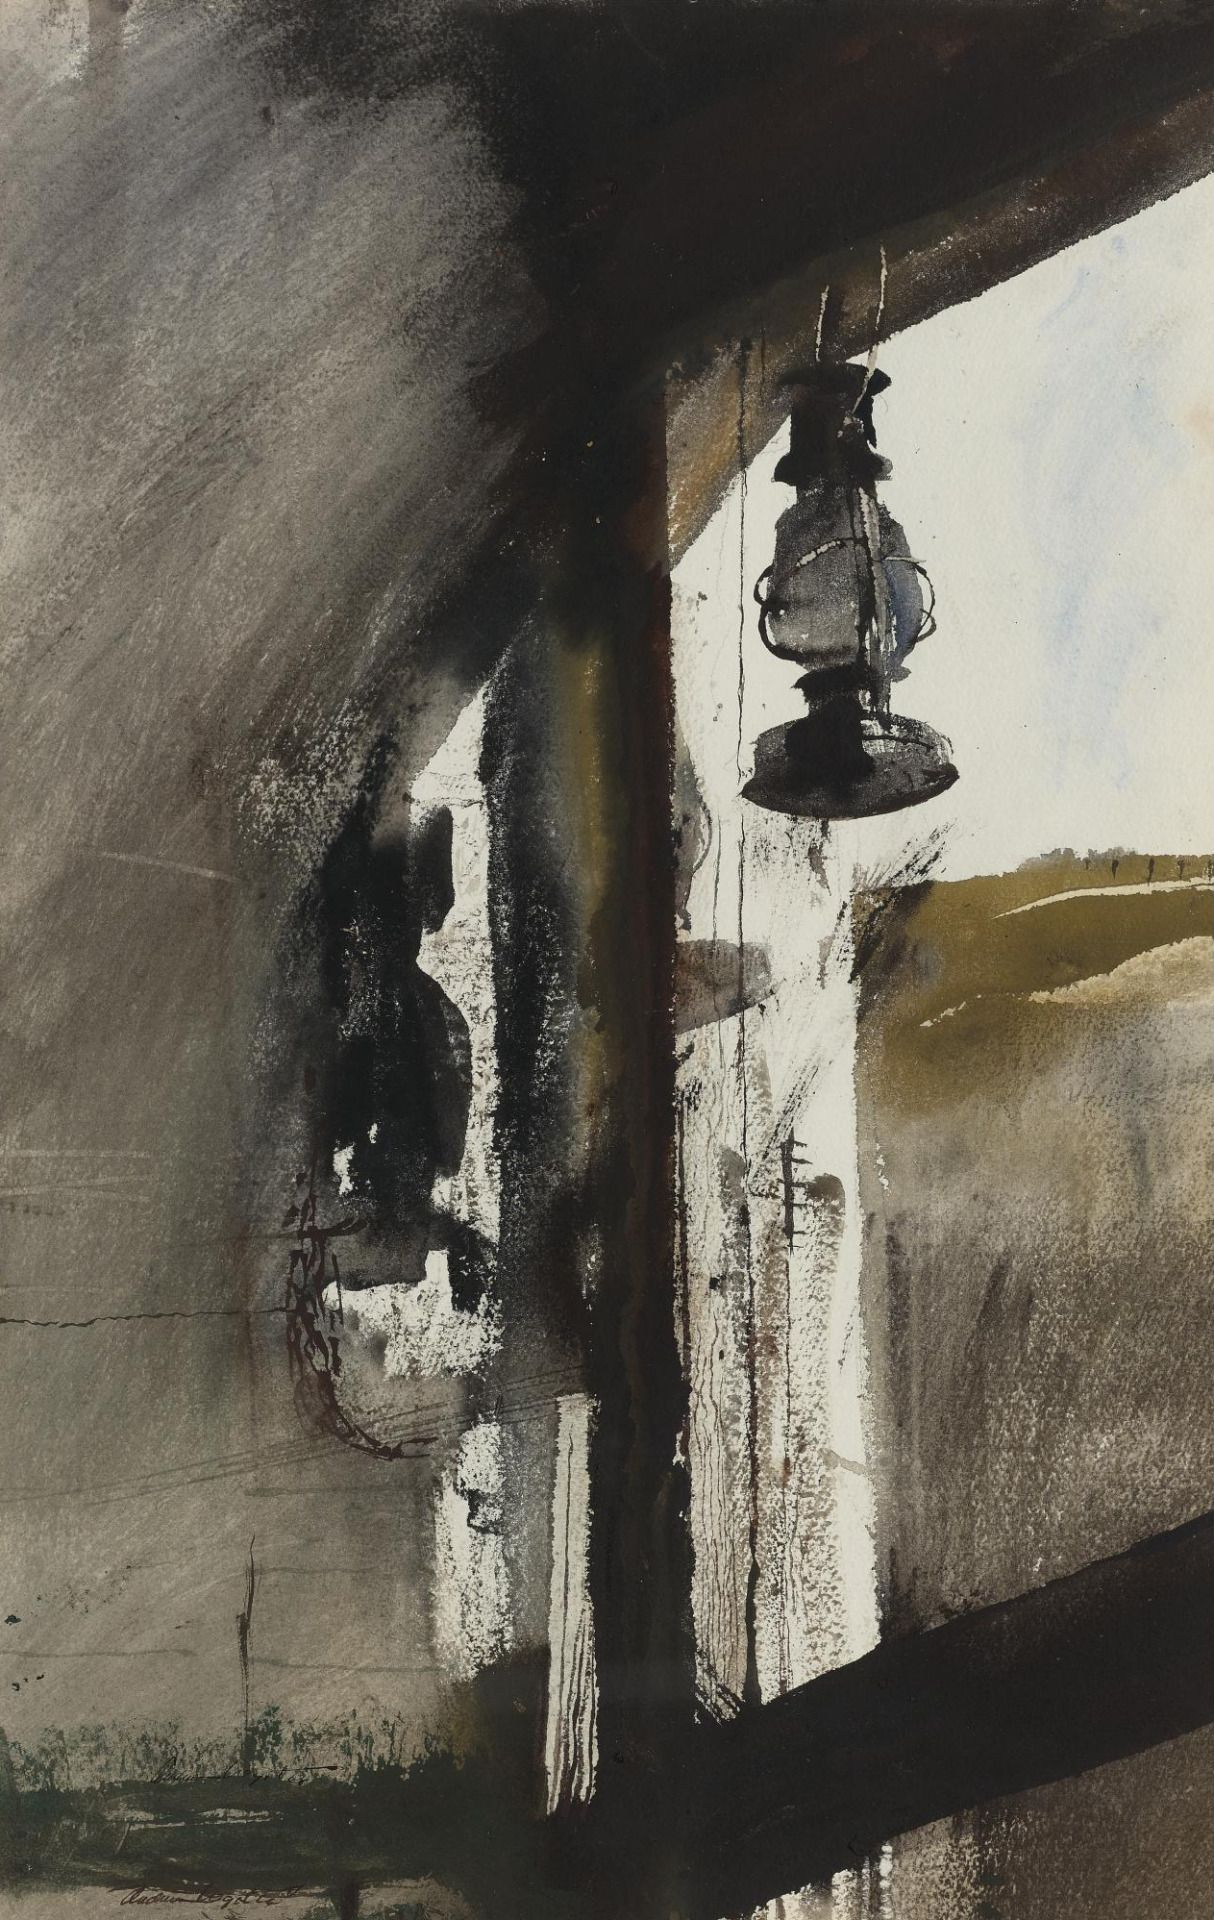 """Shed Lantern,"" Andrew Wyeth (American, 1917-2009), Watercolor on paper, 24 1/4 by 15 1/2 in., 1954"